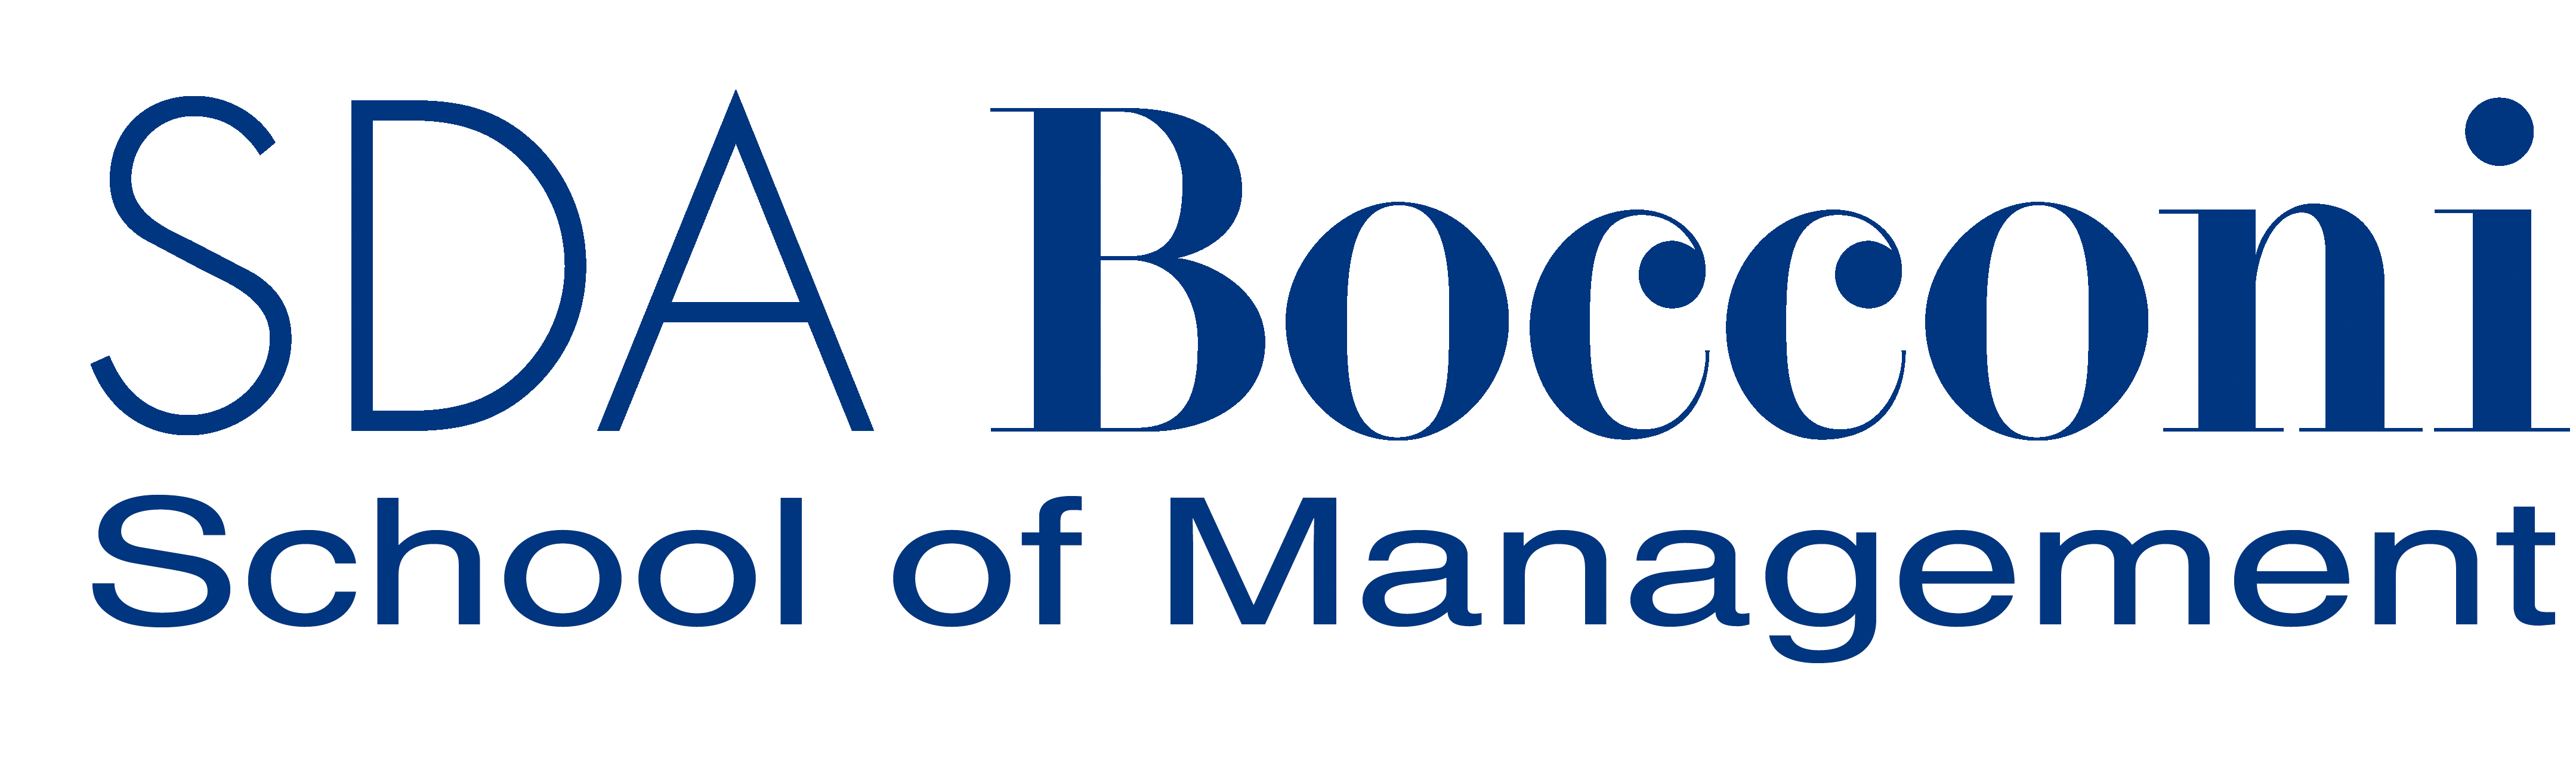 SDA Bocconi School of Management - Milano, Italy